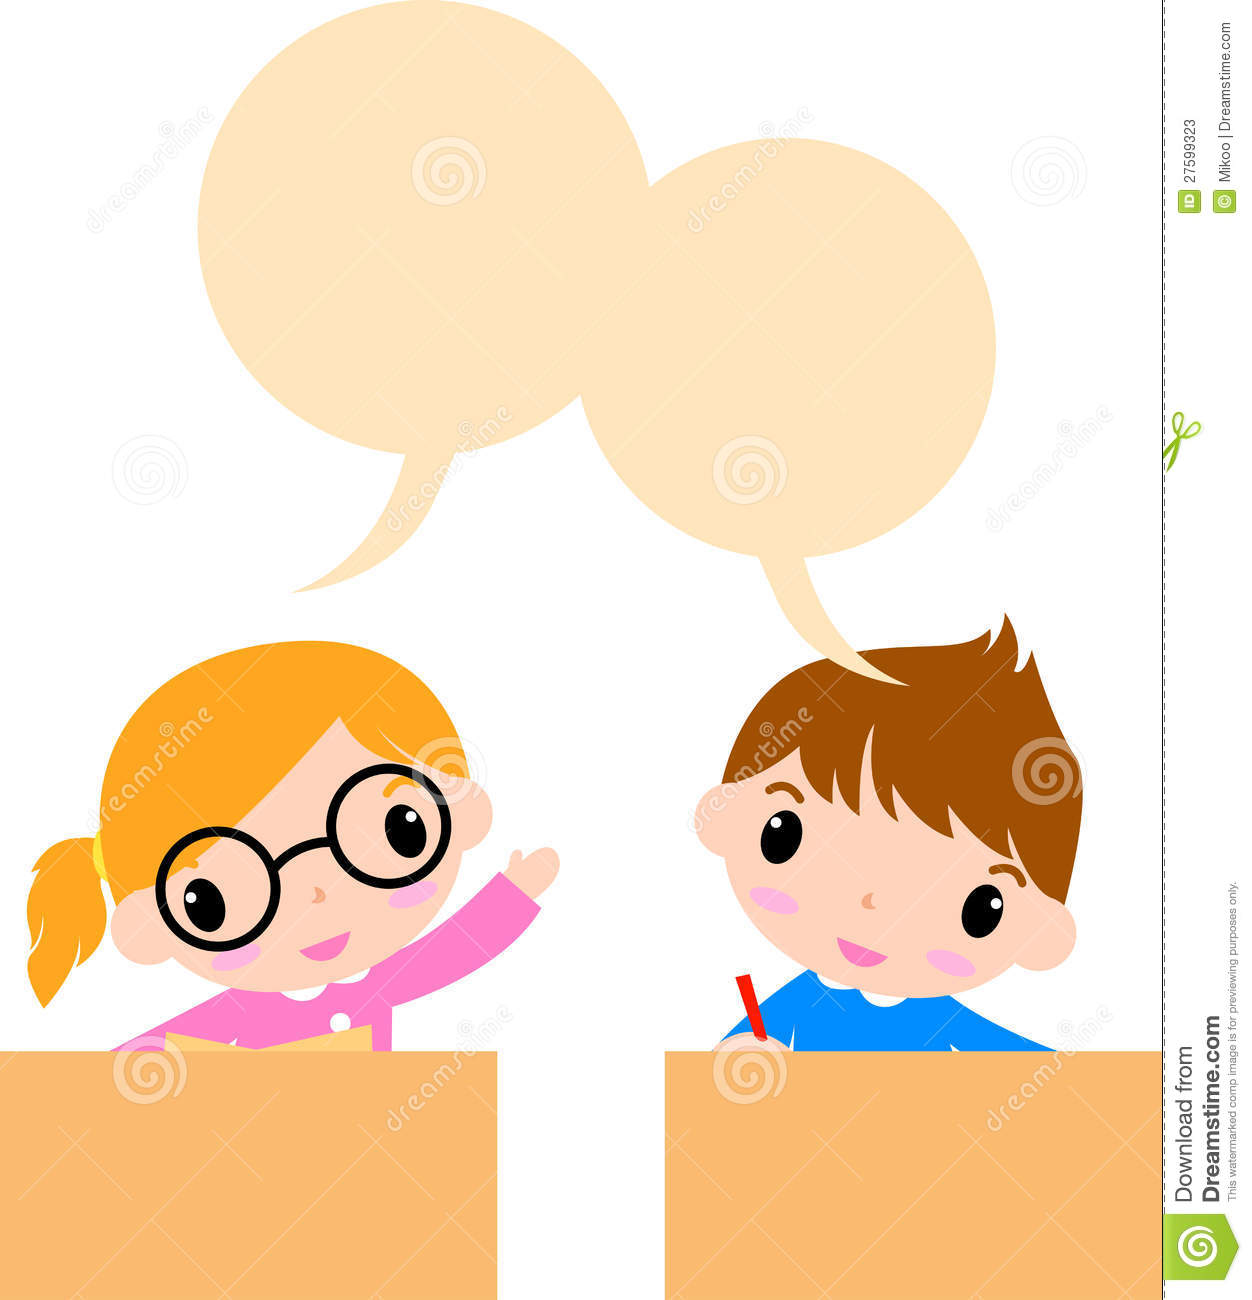 Two Kids Talking Stock Photos - Image: 27599323